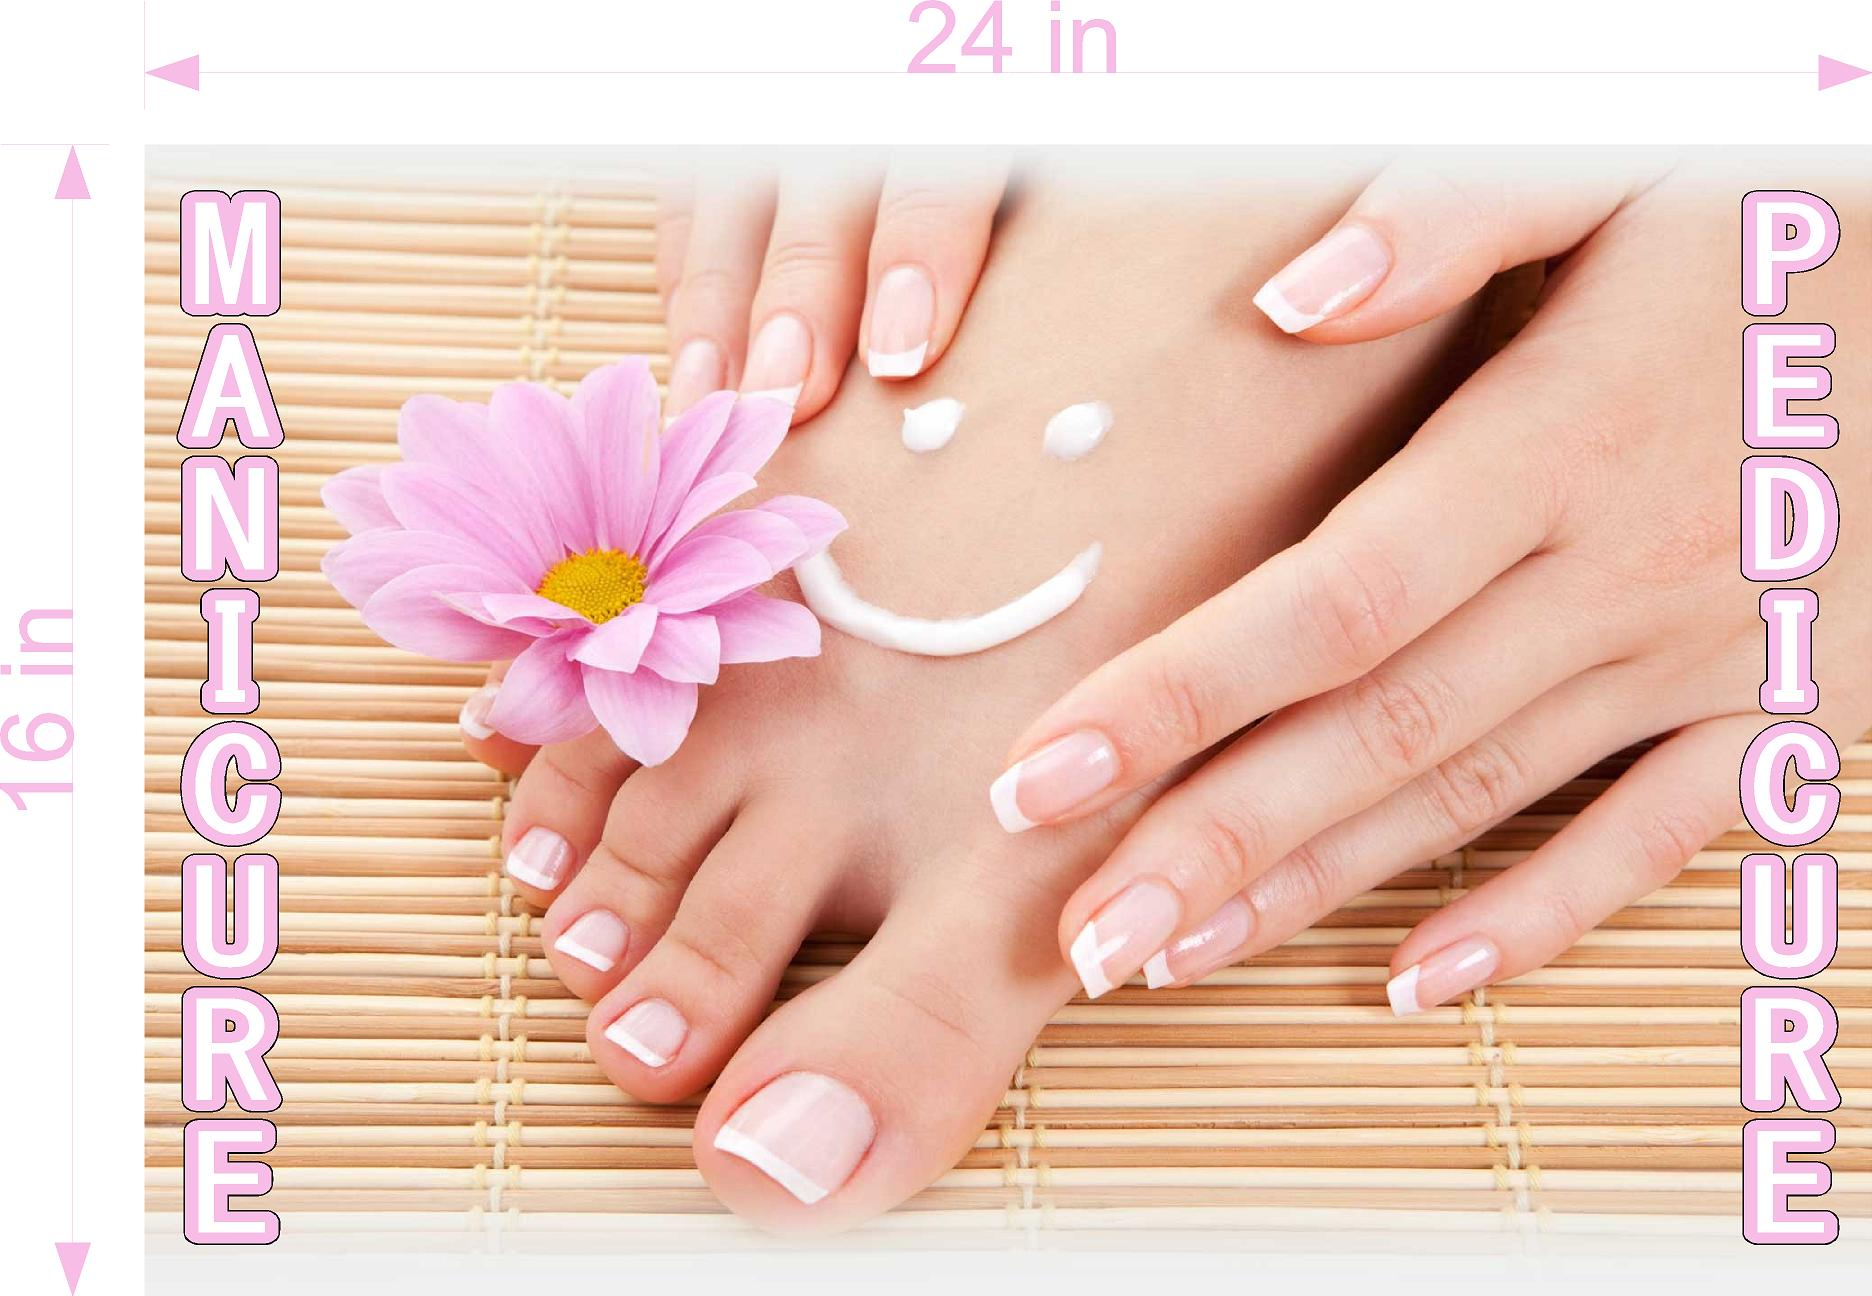 Pedicure & Manicure 01 Photo-Realistic Paper Poster Premium Matte Interior Inside Sign Adverting Marketing Wall Window Non-Laminated Horizontal